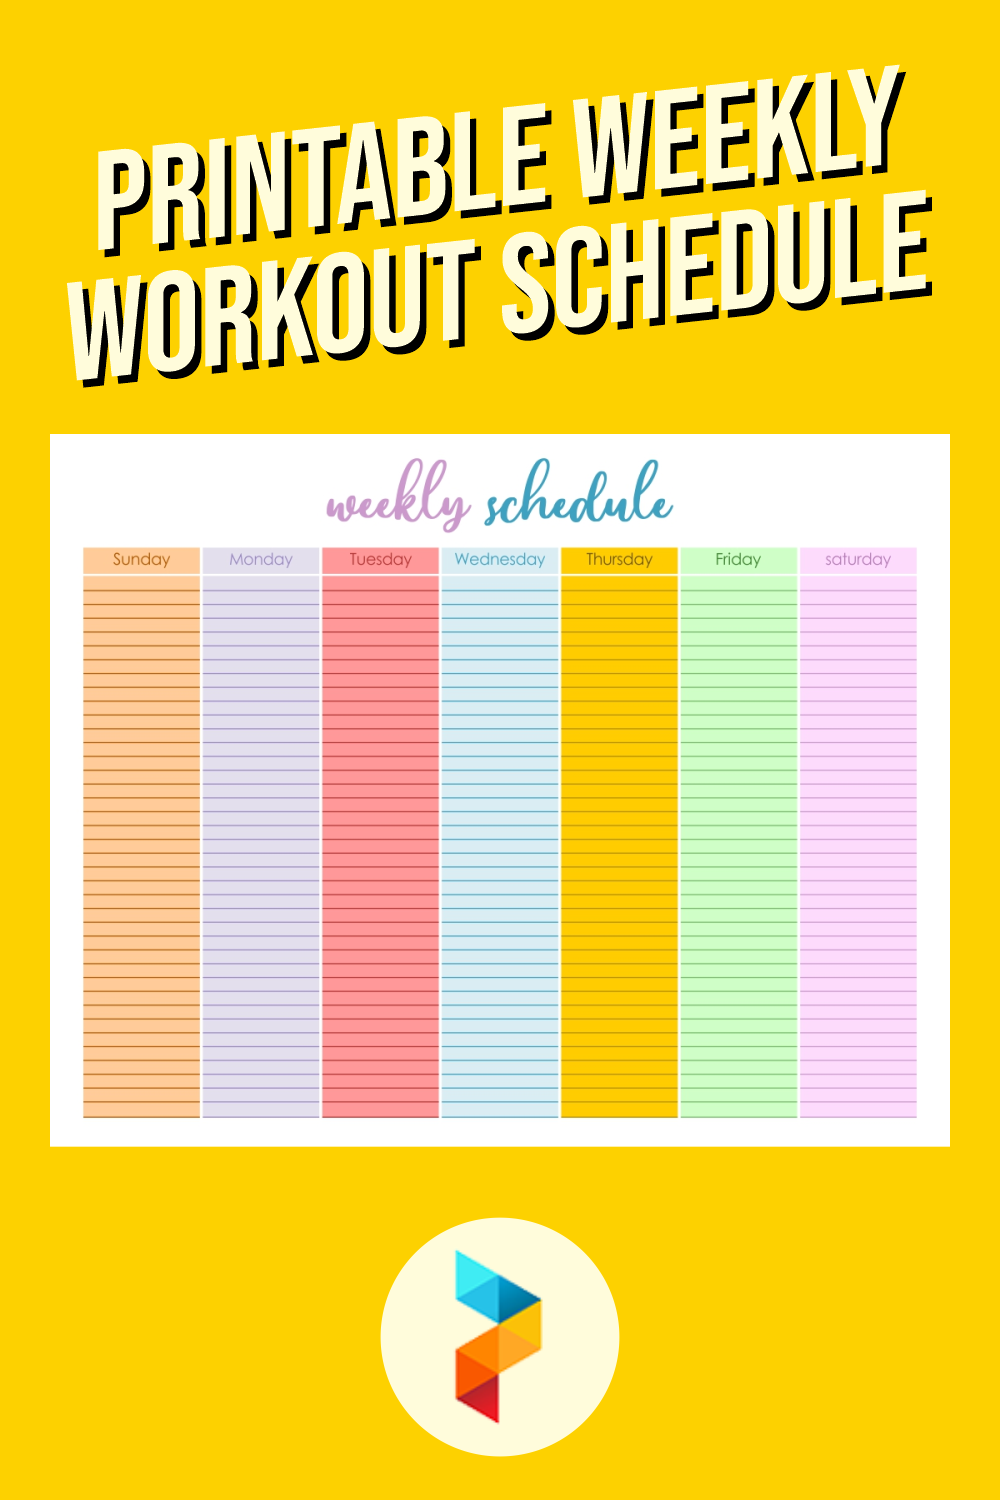 Printable Weekly Workout Schedule